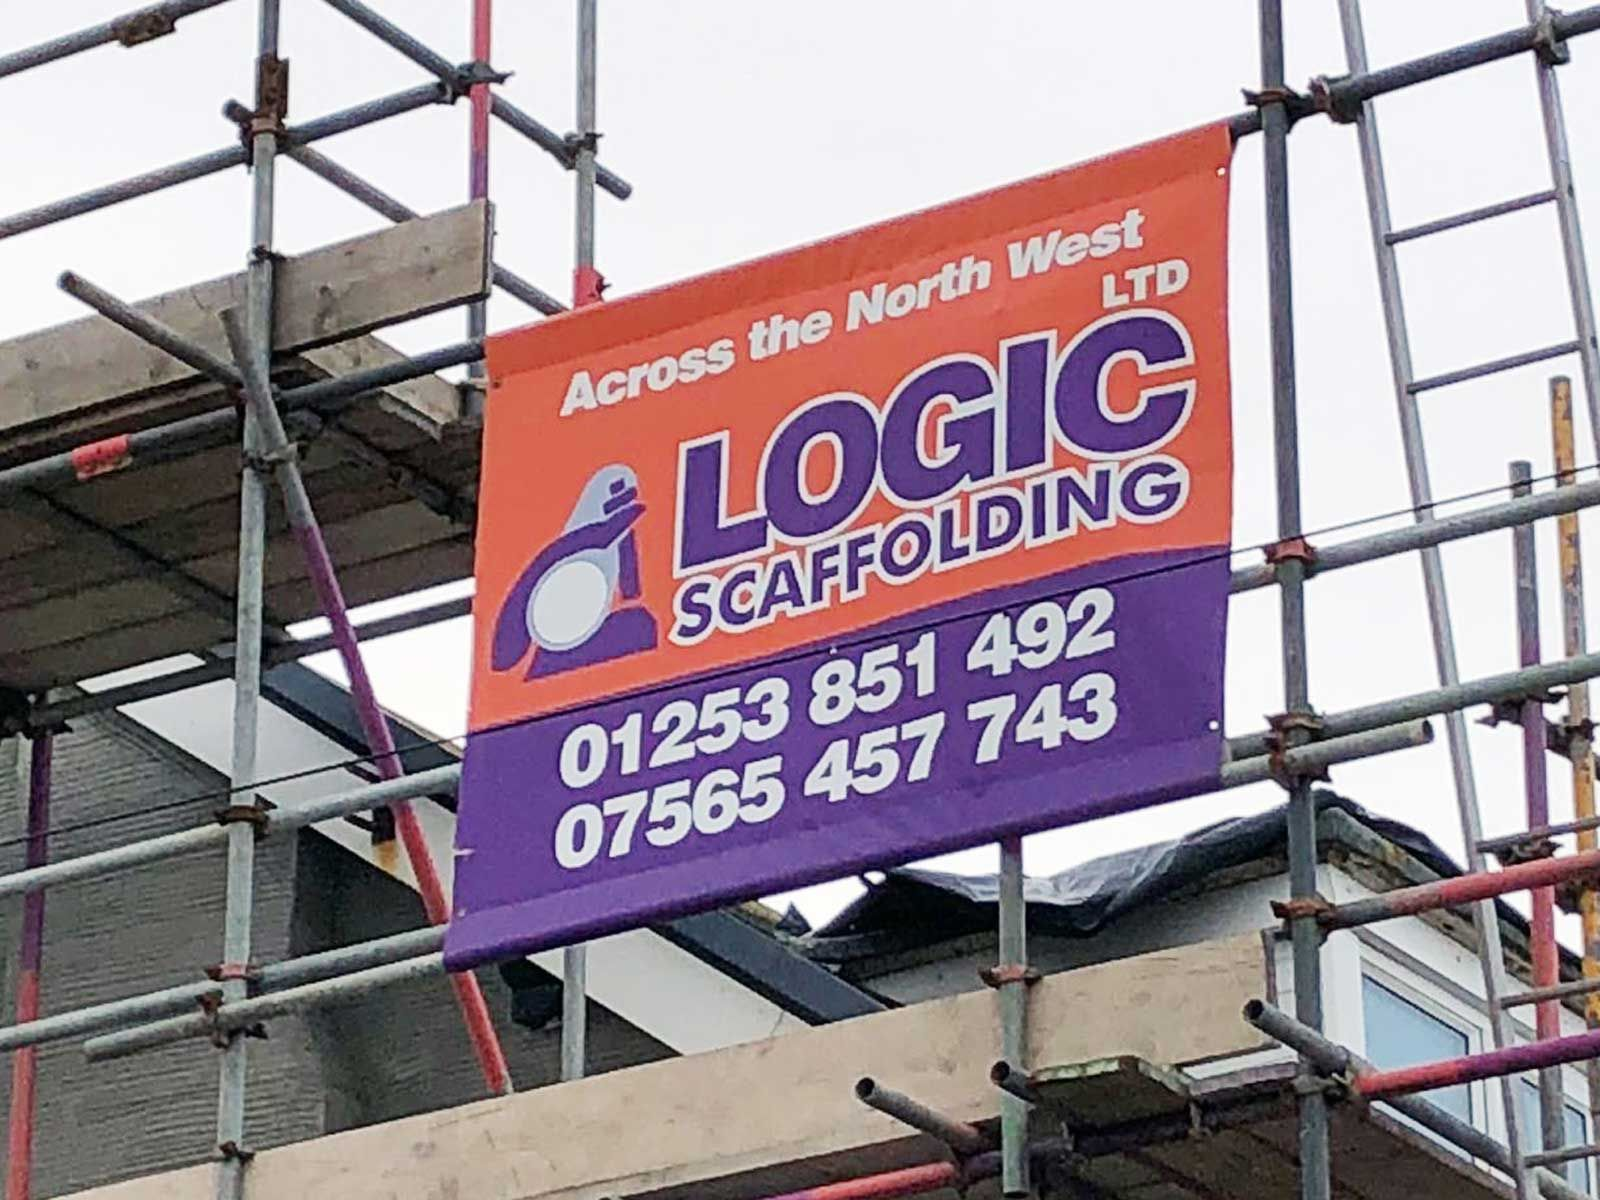 Premium Pvc Scaffold Banners 500gsm Any Design Size Or Quamtity Mesh Banner Construction Signs Pvc